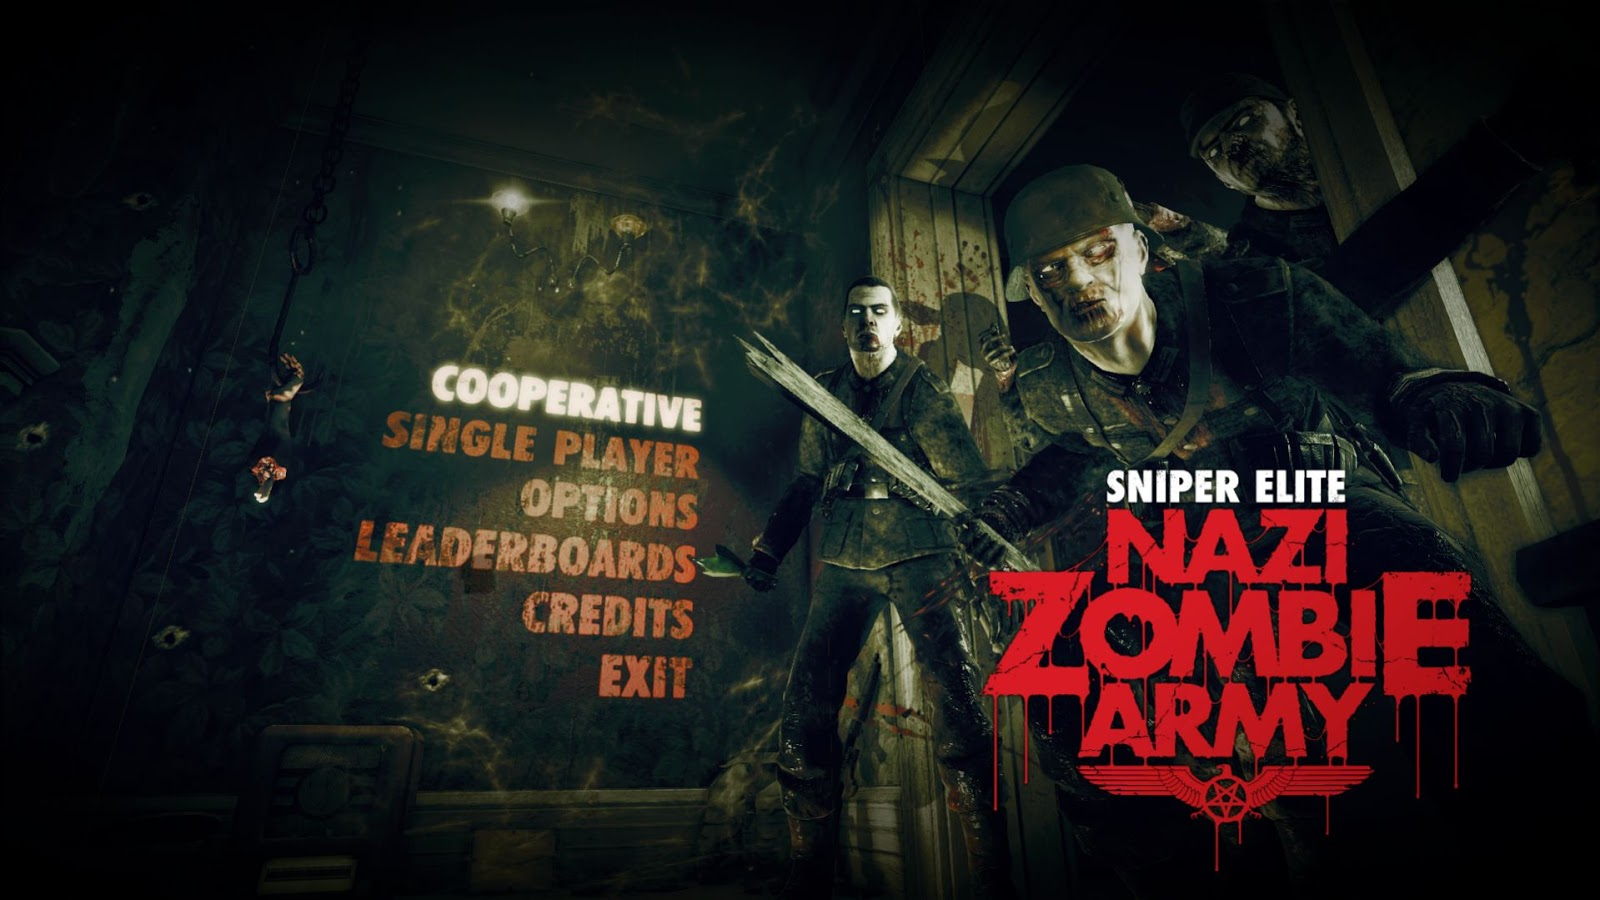 Cod Zombies Iphone Wallpaper Download Game Sniper Elite Nazi Zombie Army Full Iso 100